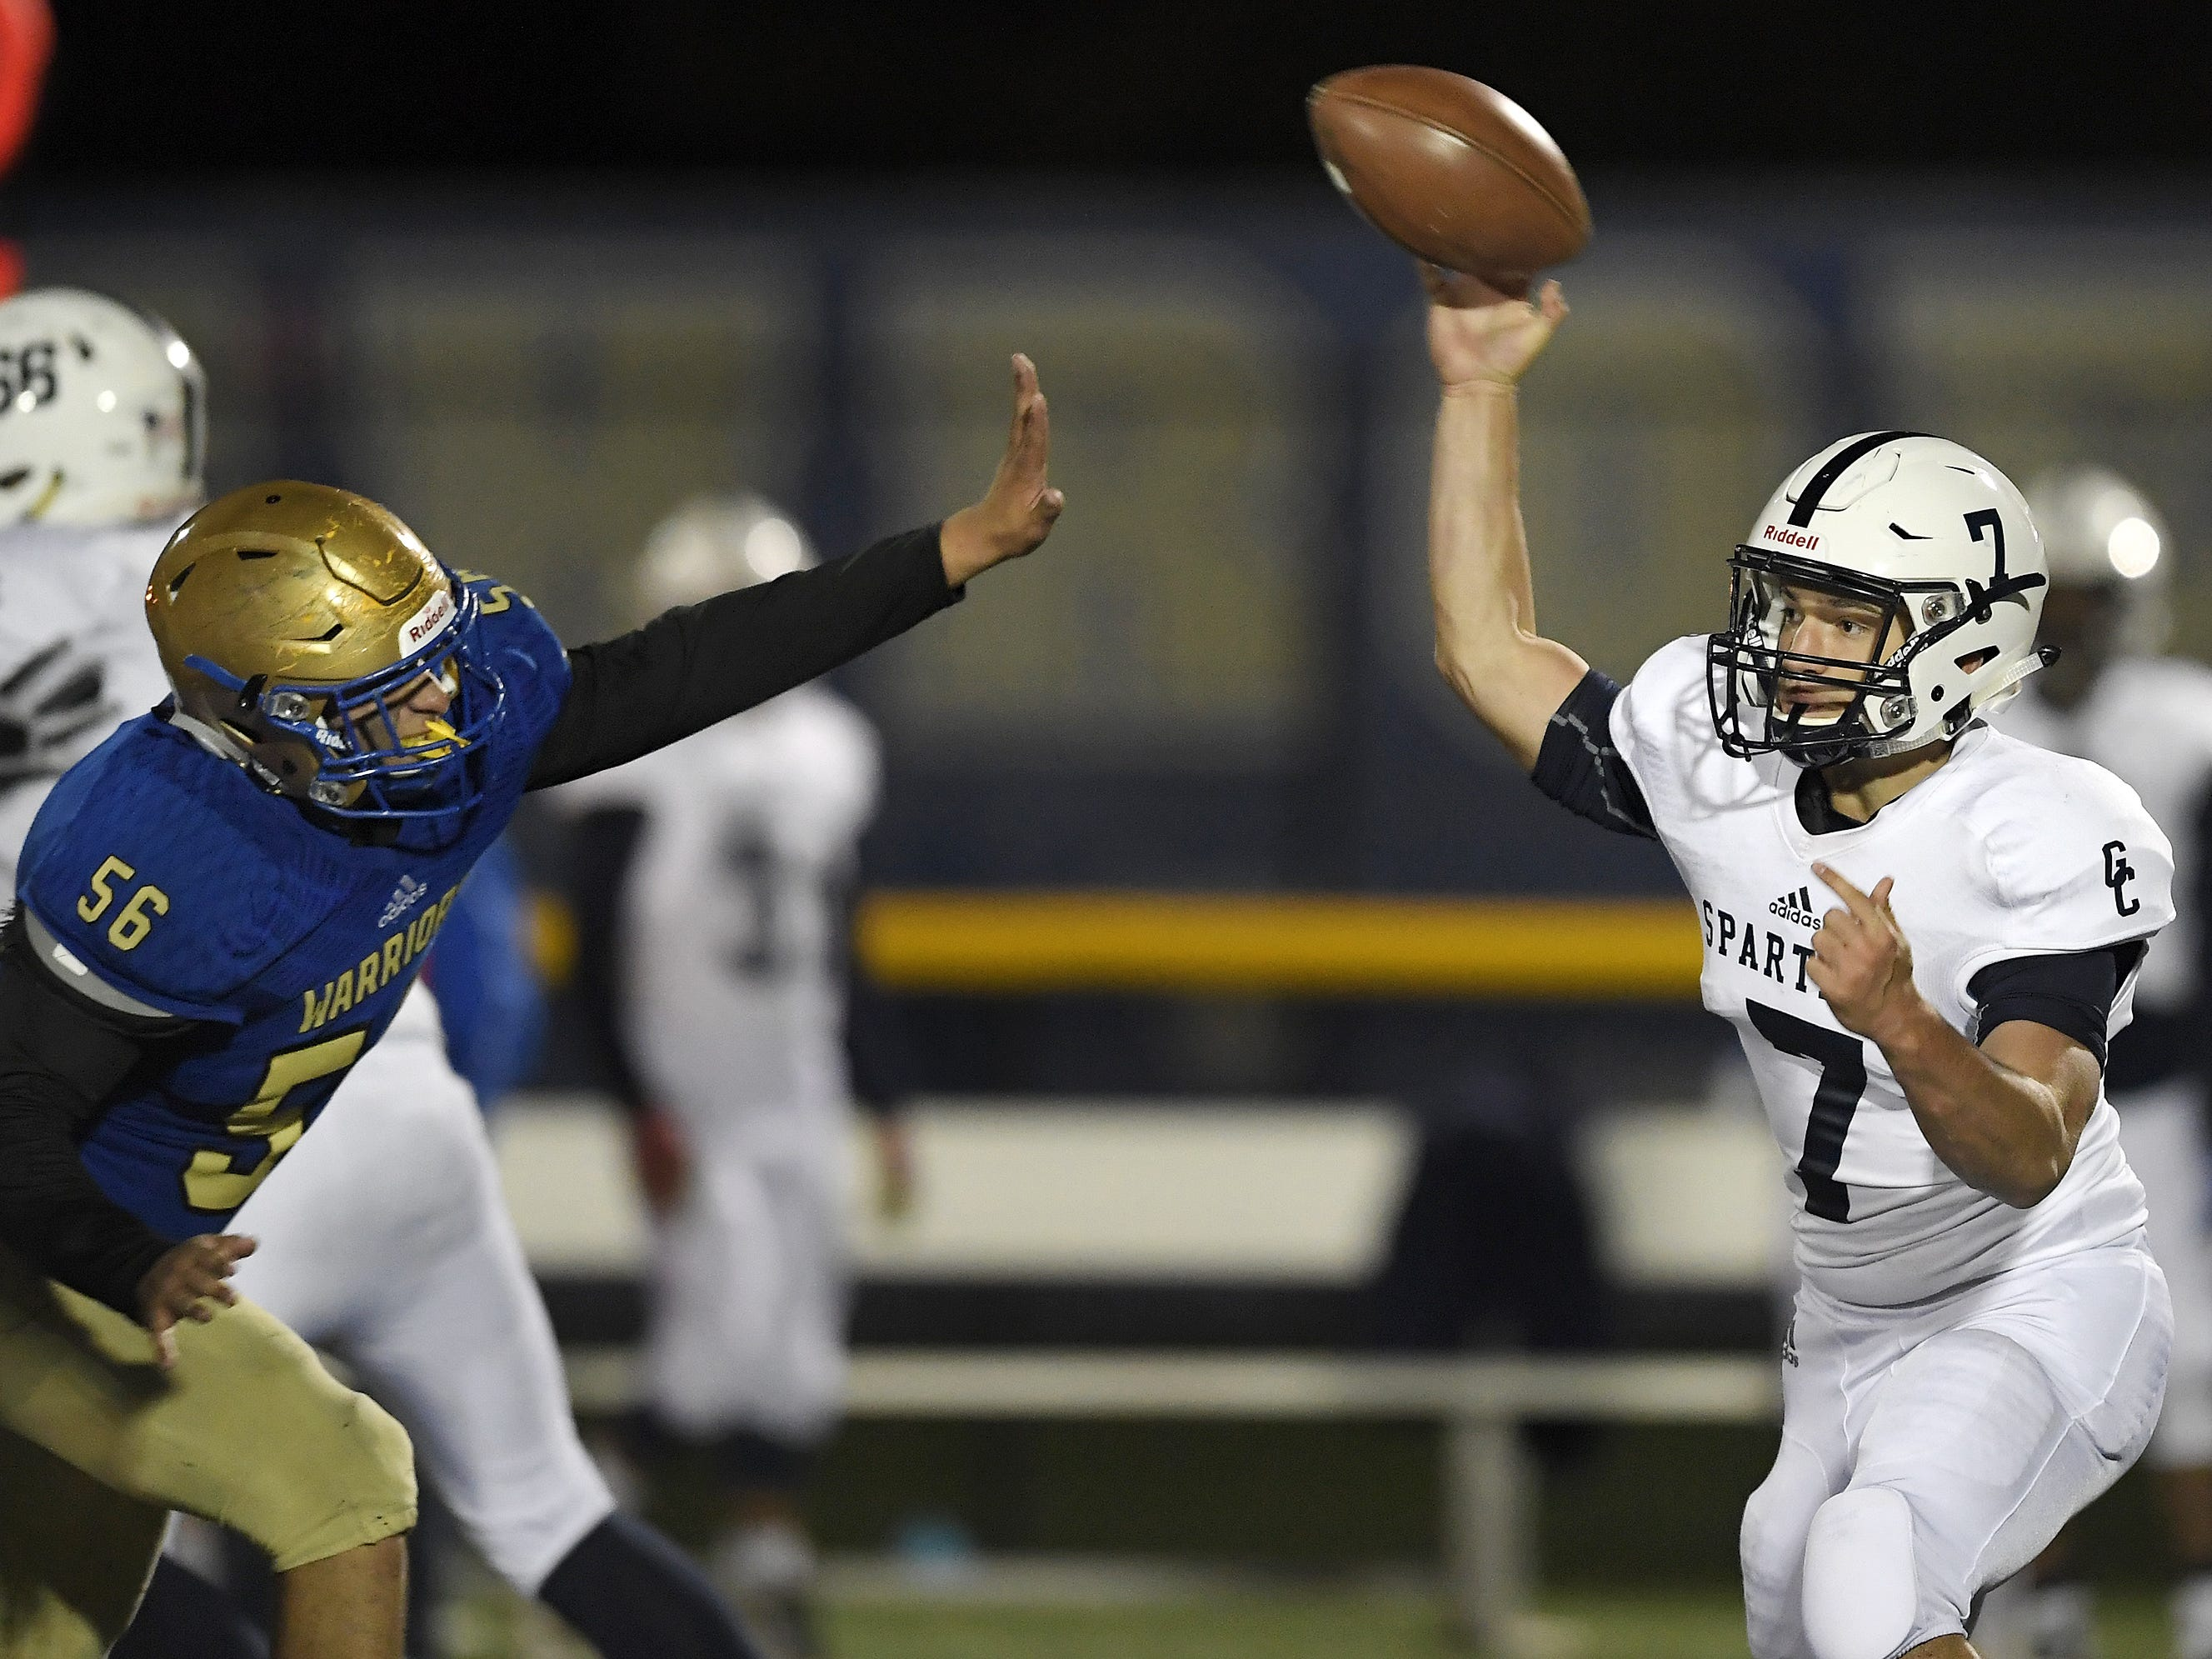 Gates Chili's Jake Antinelli, right, throws a pass while pressured by Webster Schroeder's Giacomo Lo Re during a game played Friday, Oct. 12, 2018 at Webster Schroeder. Webster Schroeder beat Gates Chili 28-7.